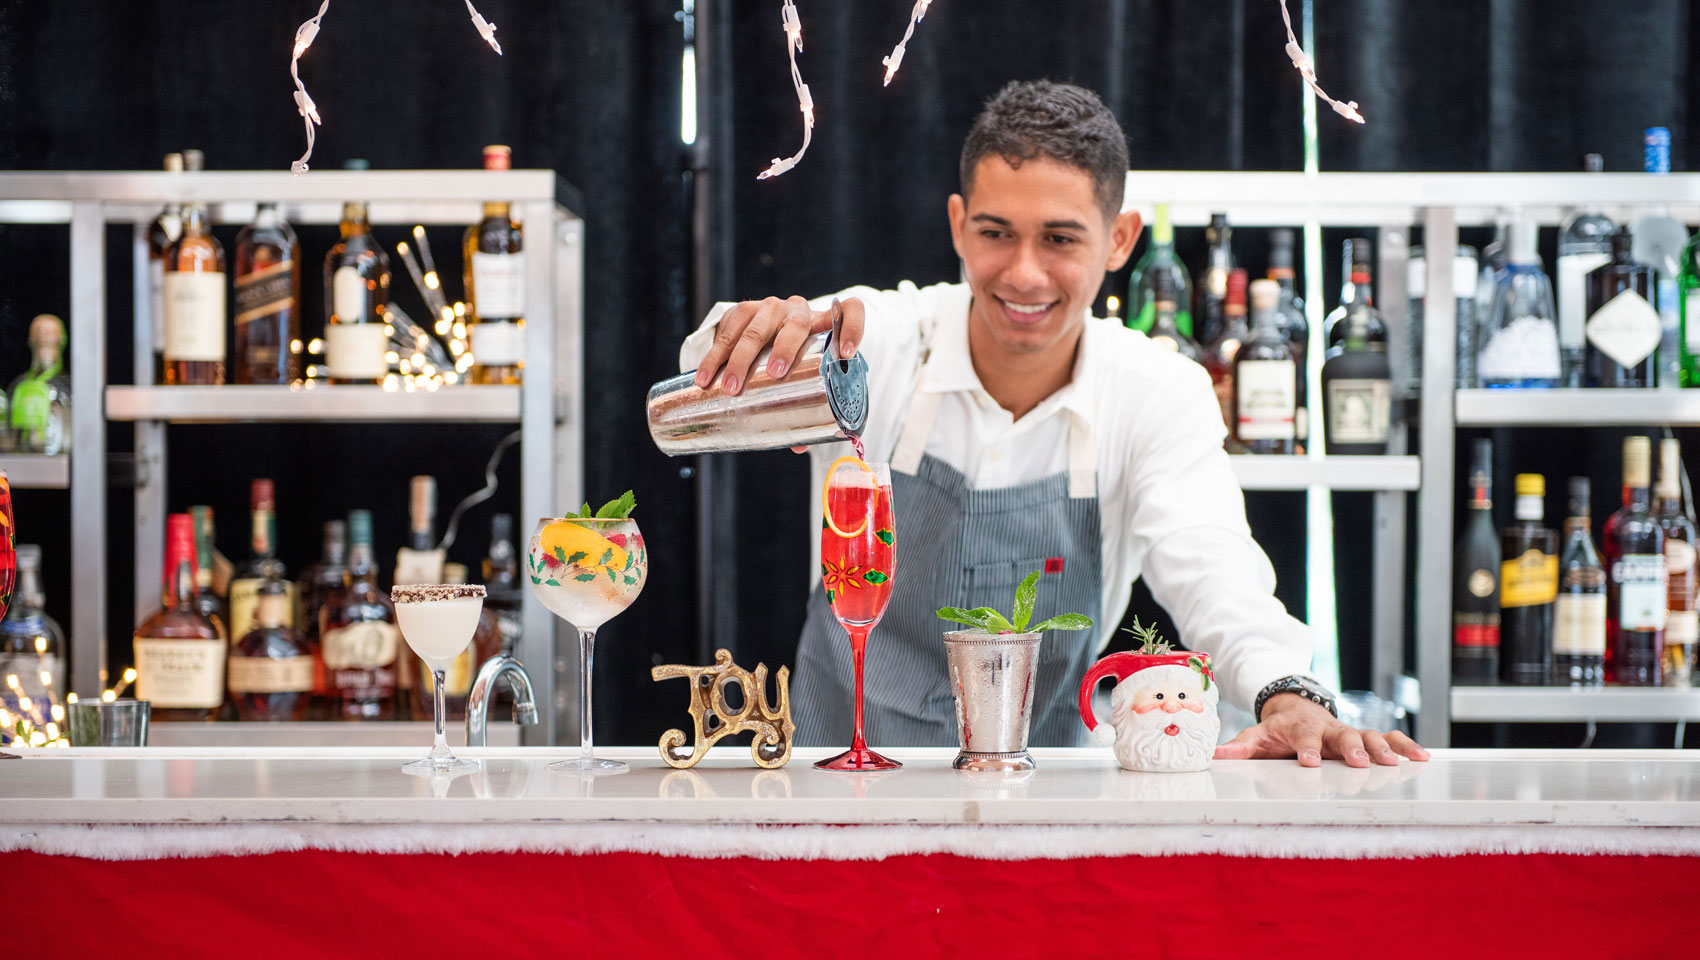 Bartender at Gingerbread Bar pouring a drink